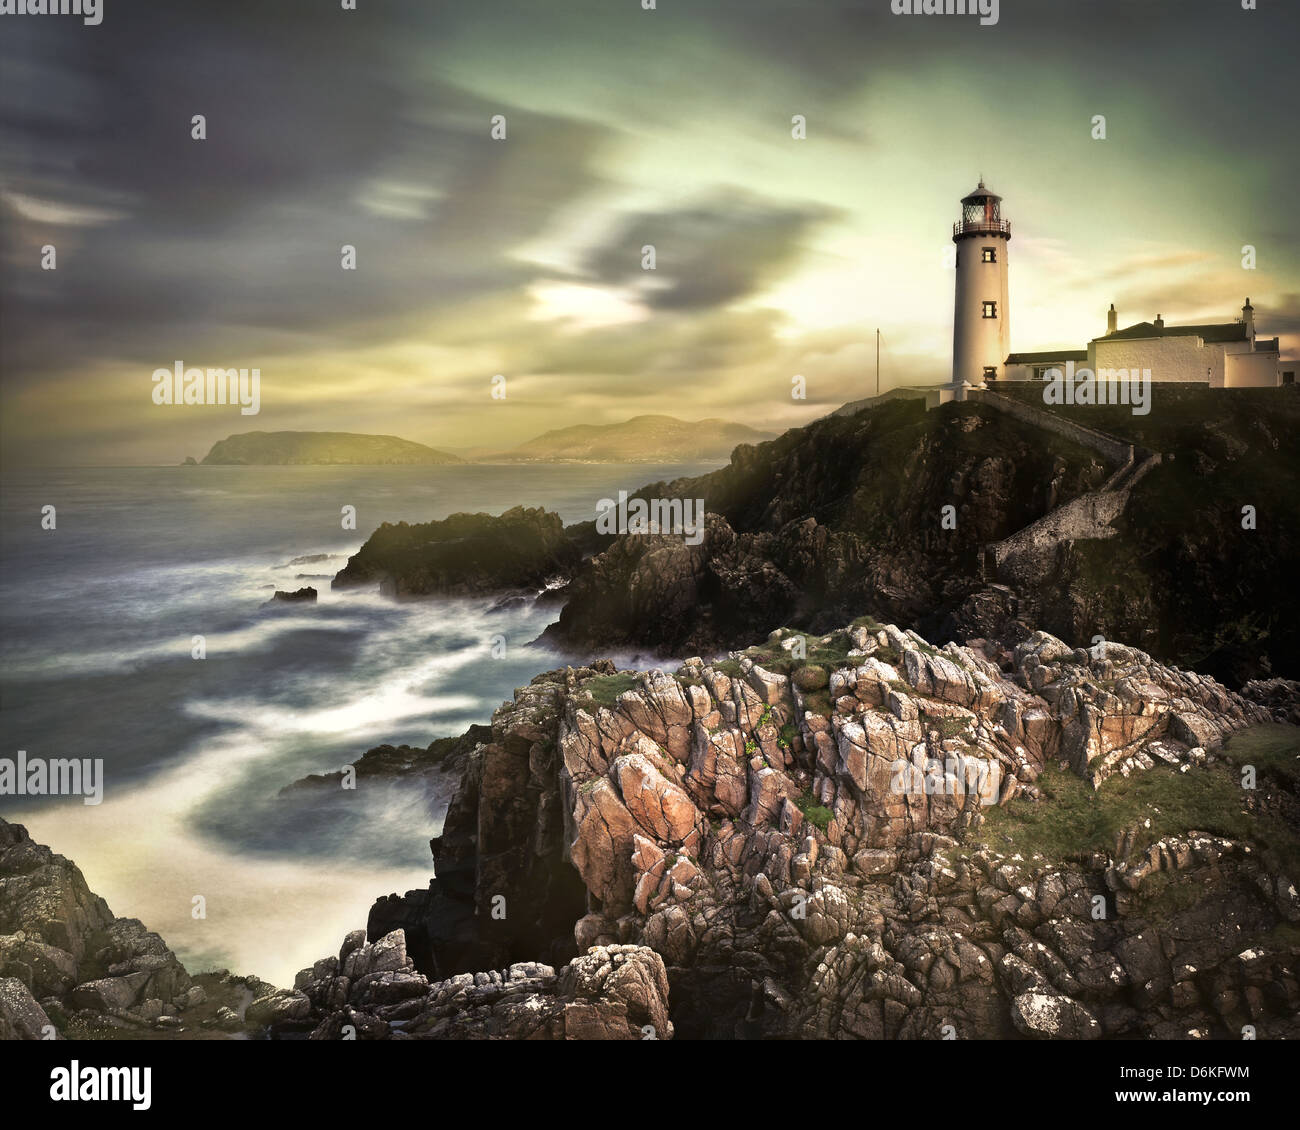 IE - CO.DONEGAL: Fanad Head Lighthouse - Stock Image